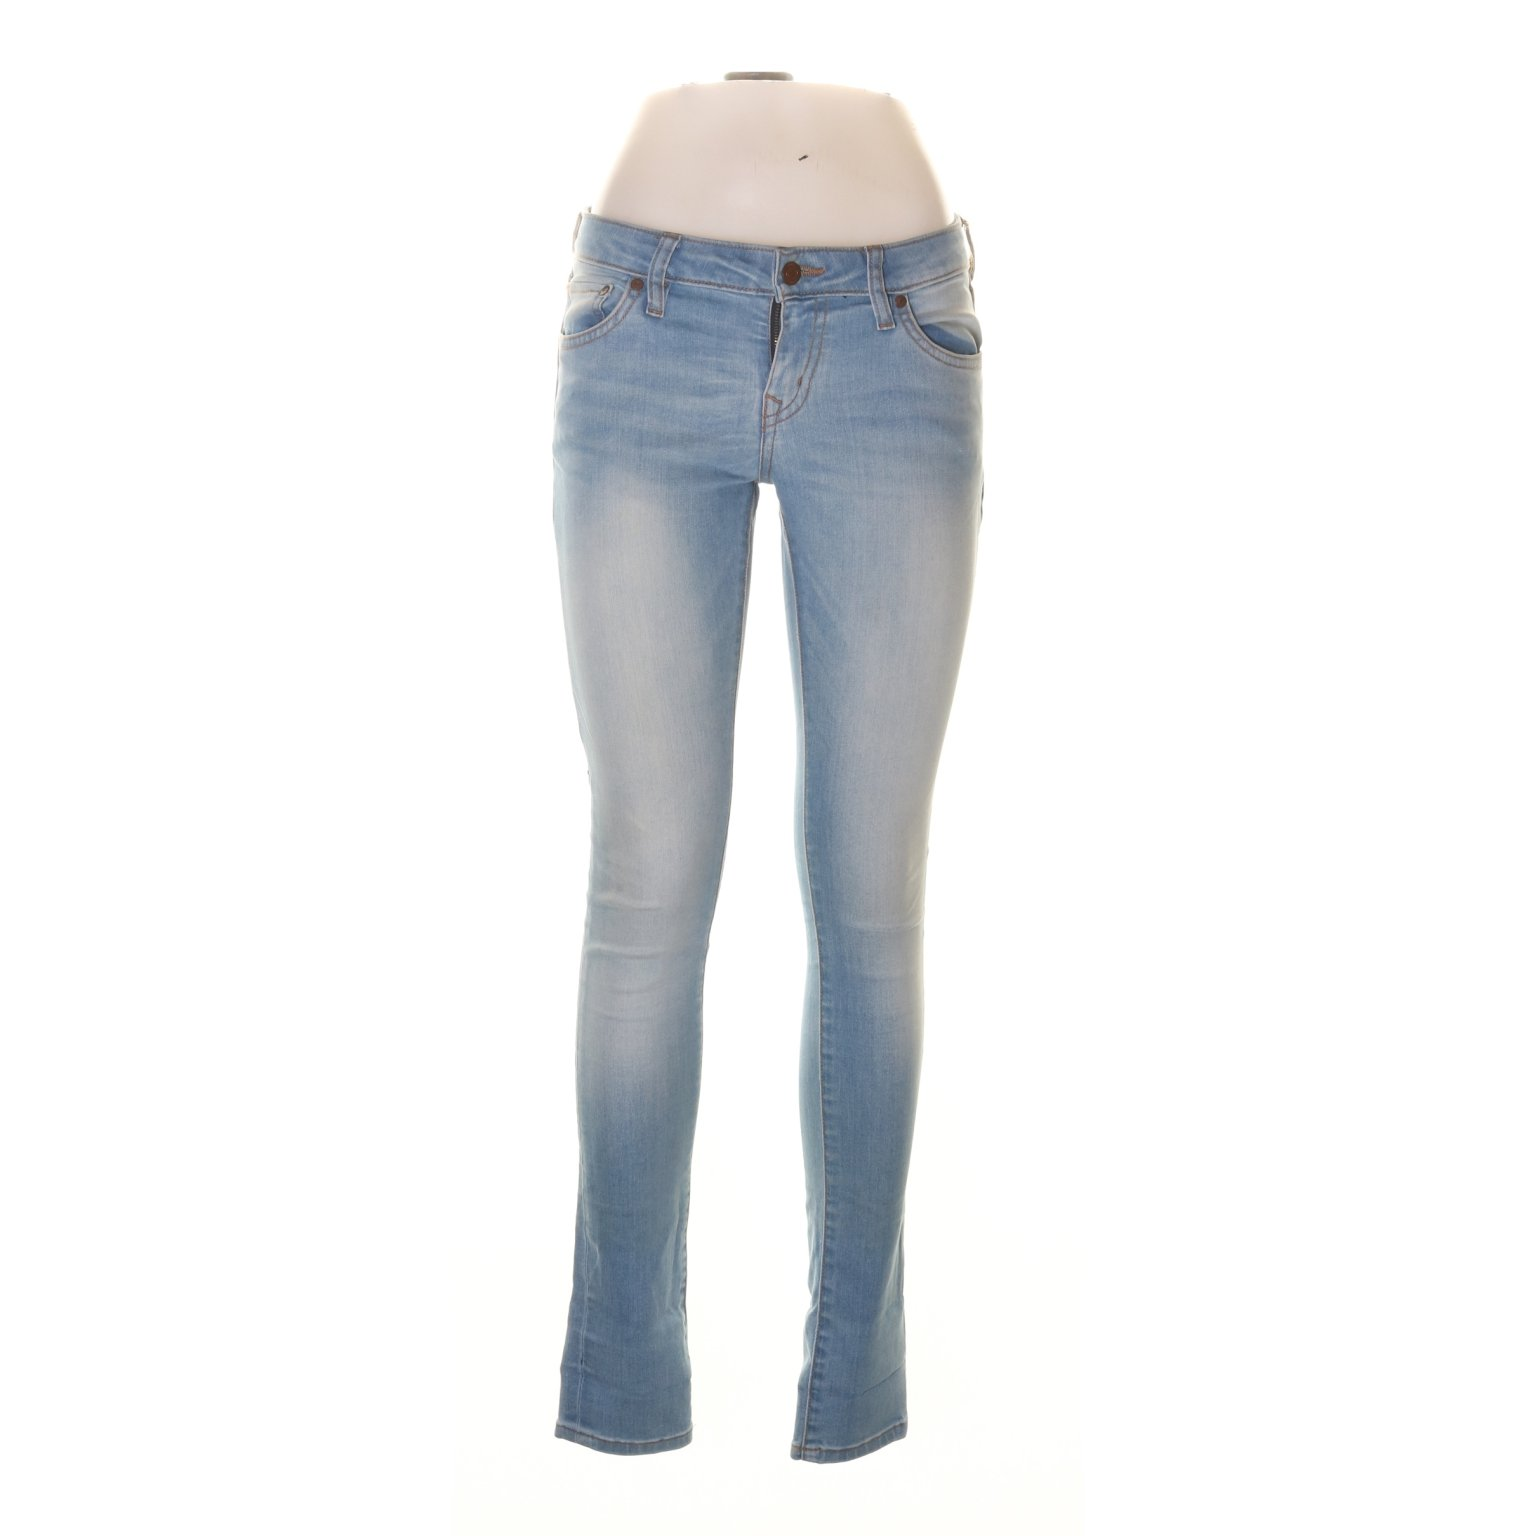 Crocker, Jeans, Strl: 29/32, Hit low, Blå, Bomull/Polyester/Elastan